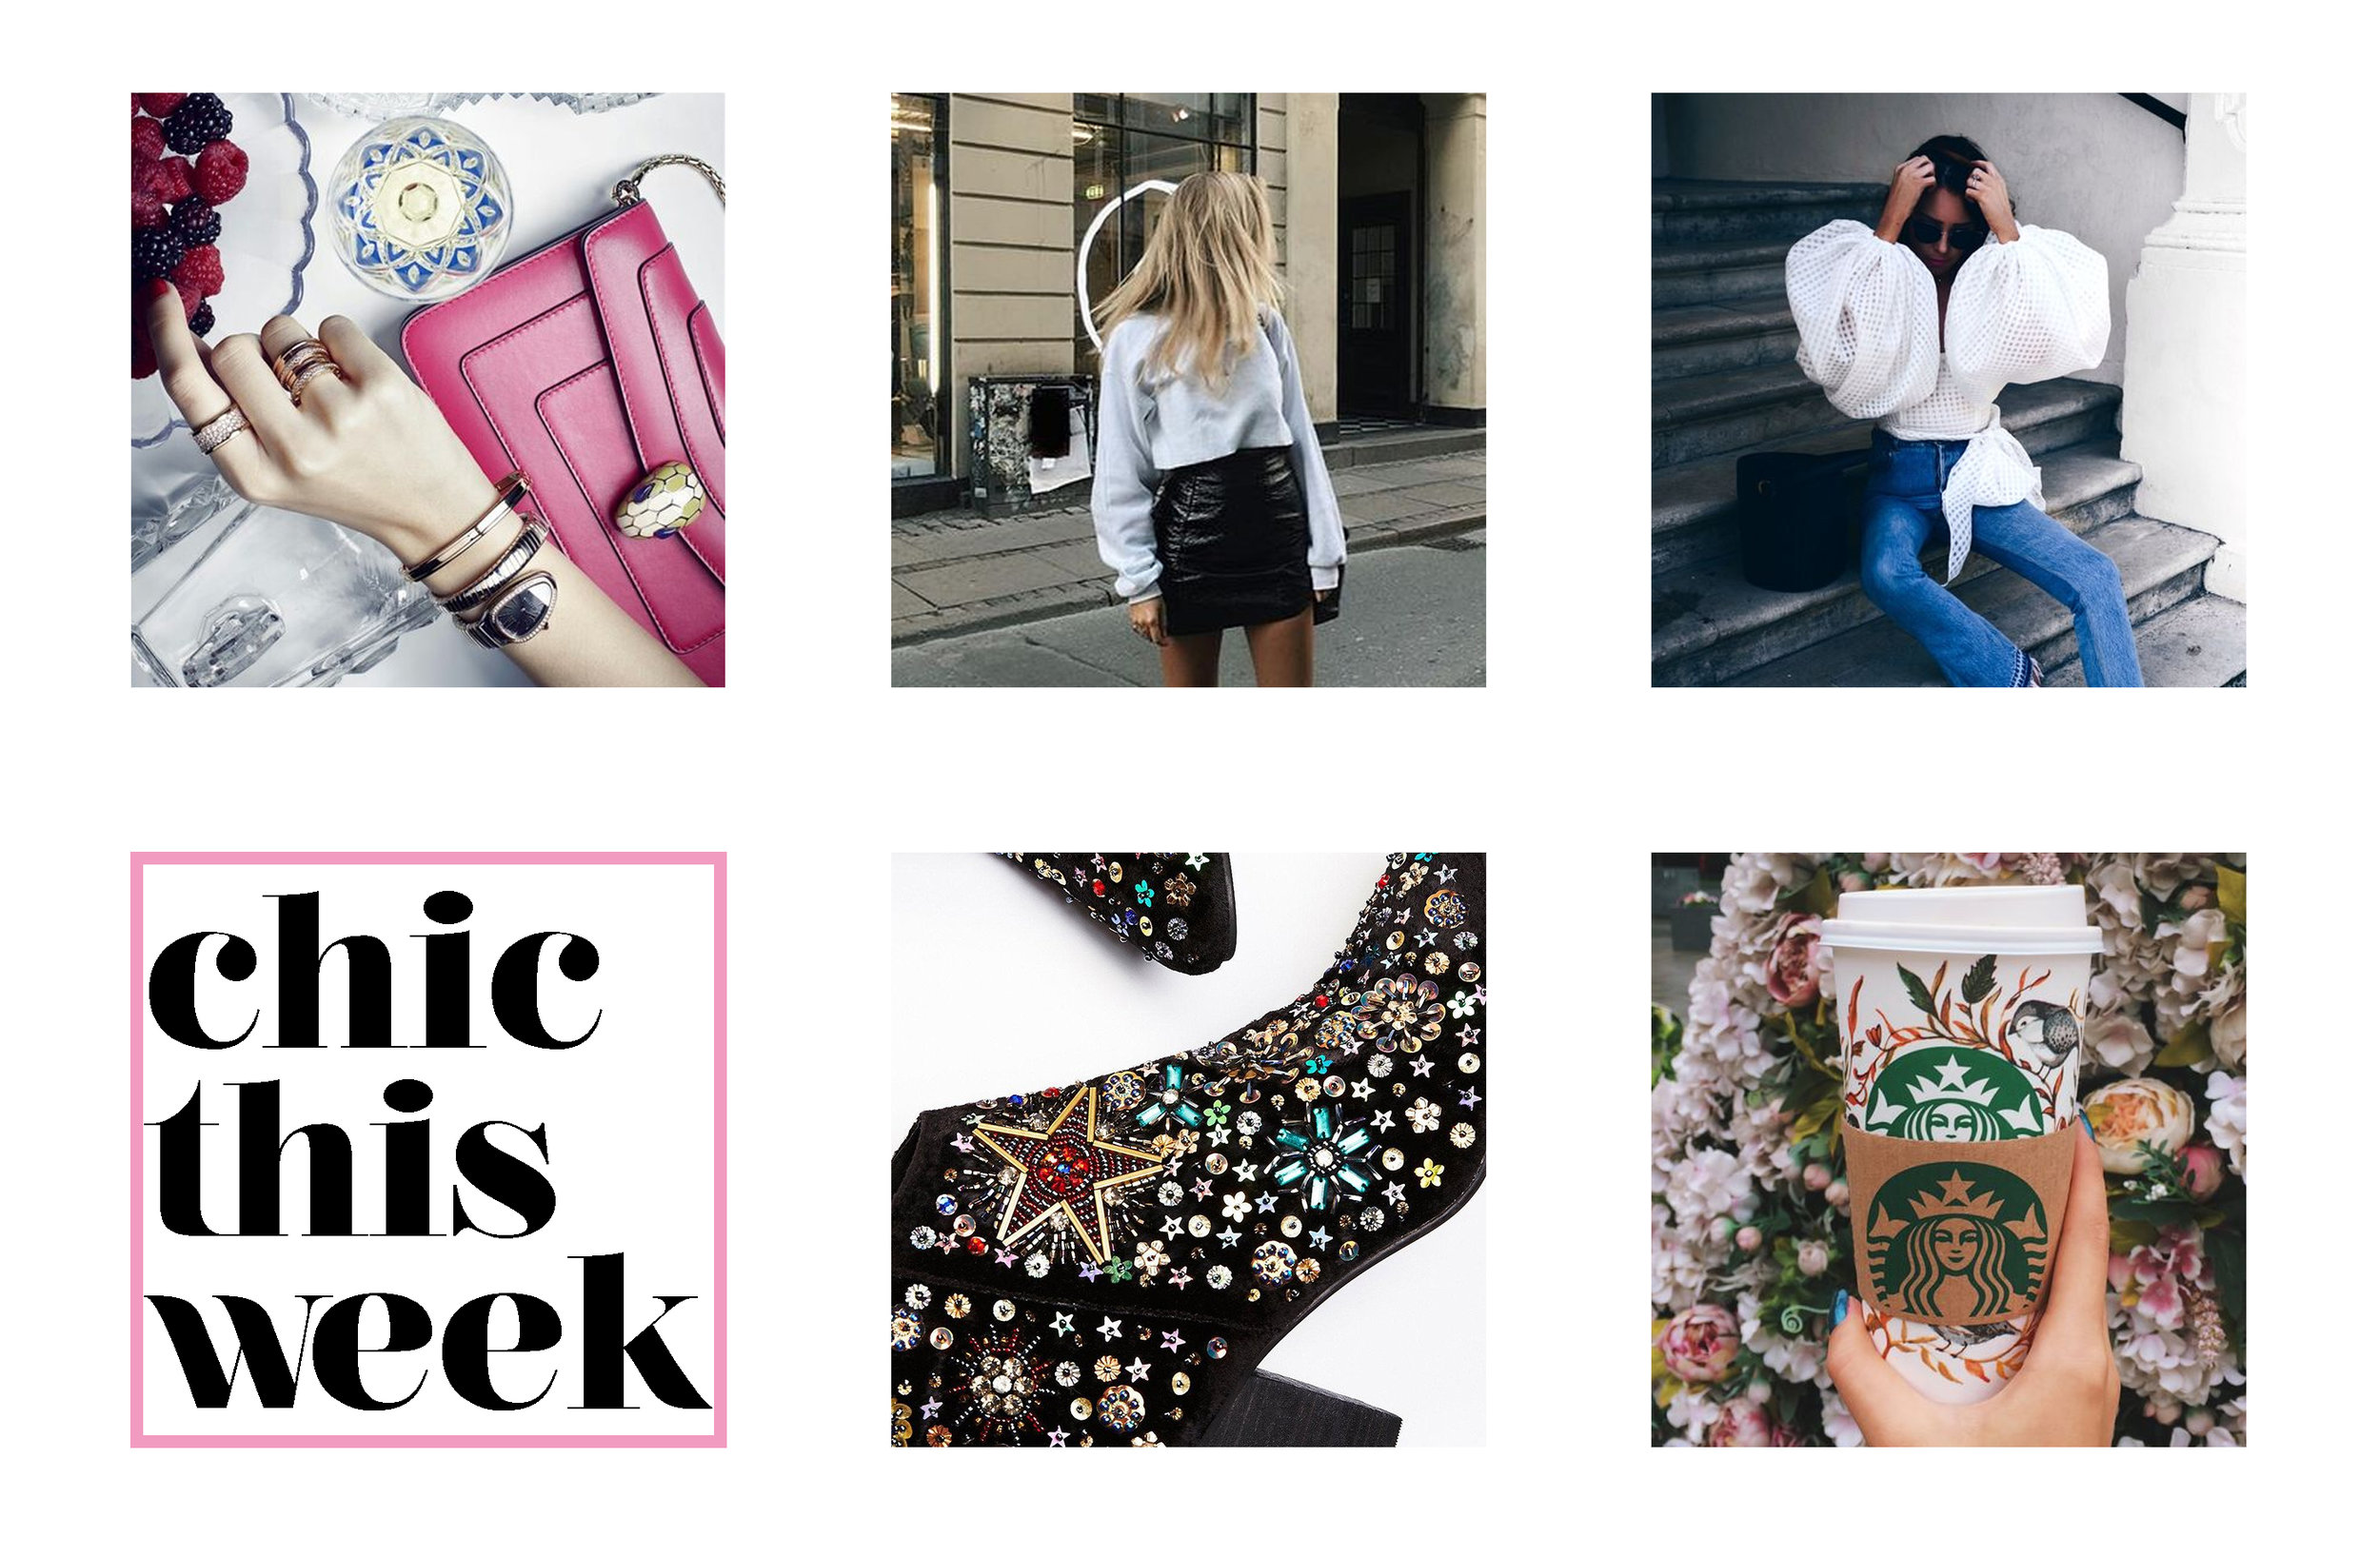 What's CHIC this week (Vol. 047)